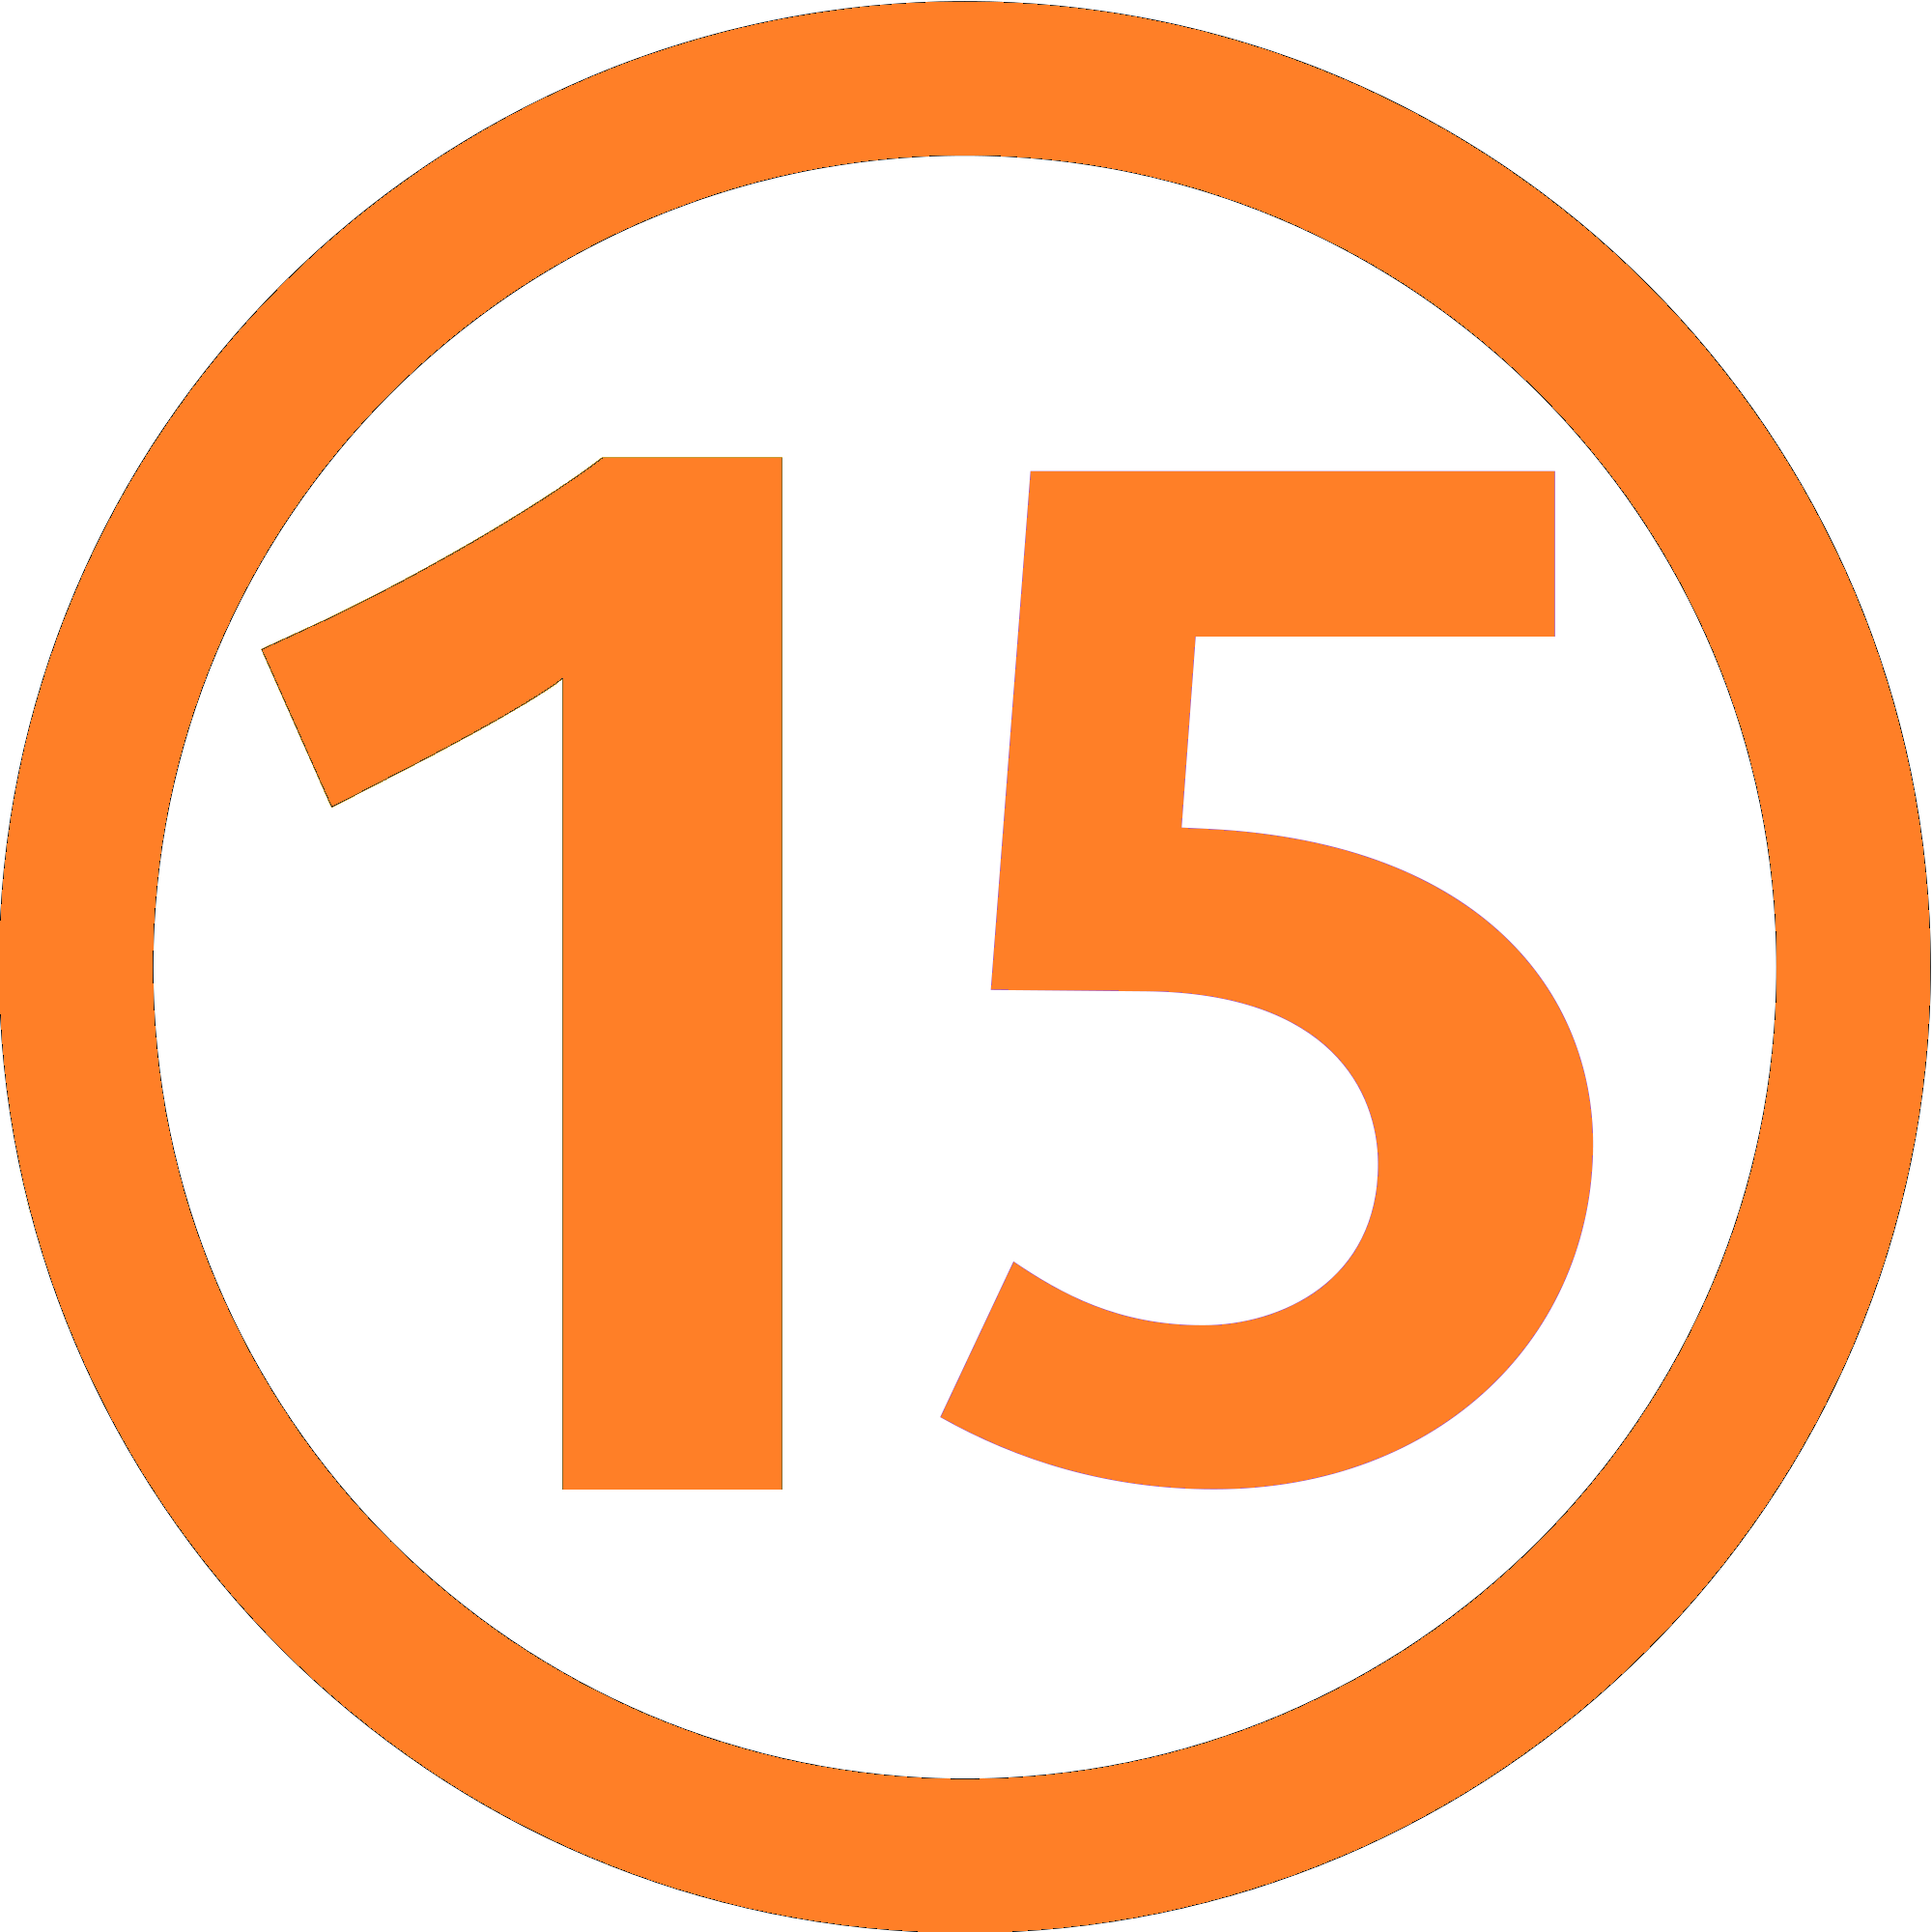 15 >> File Logo Ligne 15 Narbonne Png Wikimedia Commons